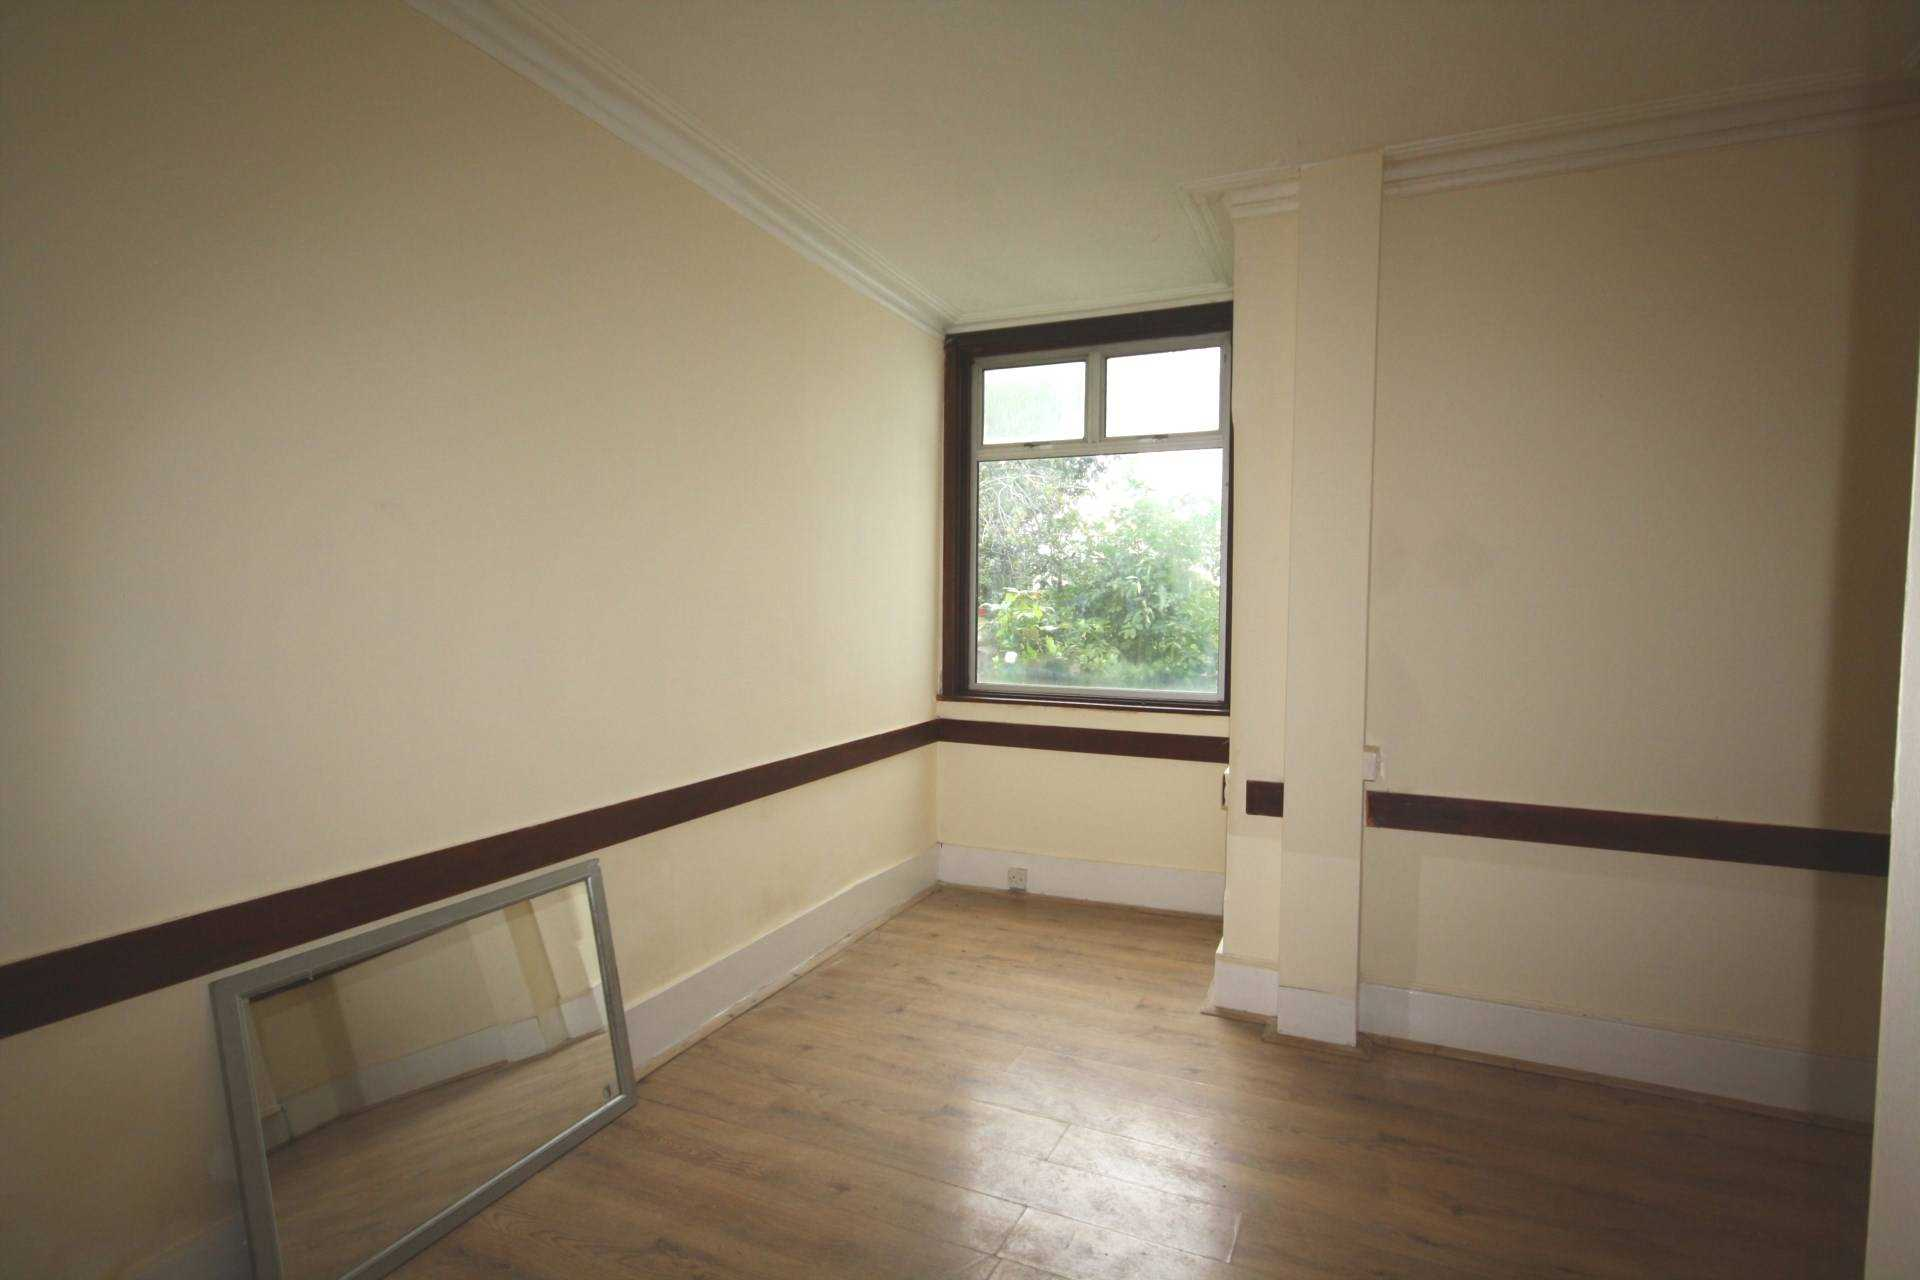 2 Bedroom Flat To Rent Warrior Square Southend On Sea Ss1 2jj